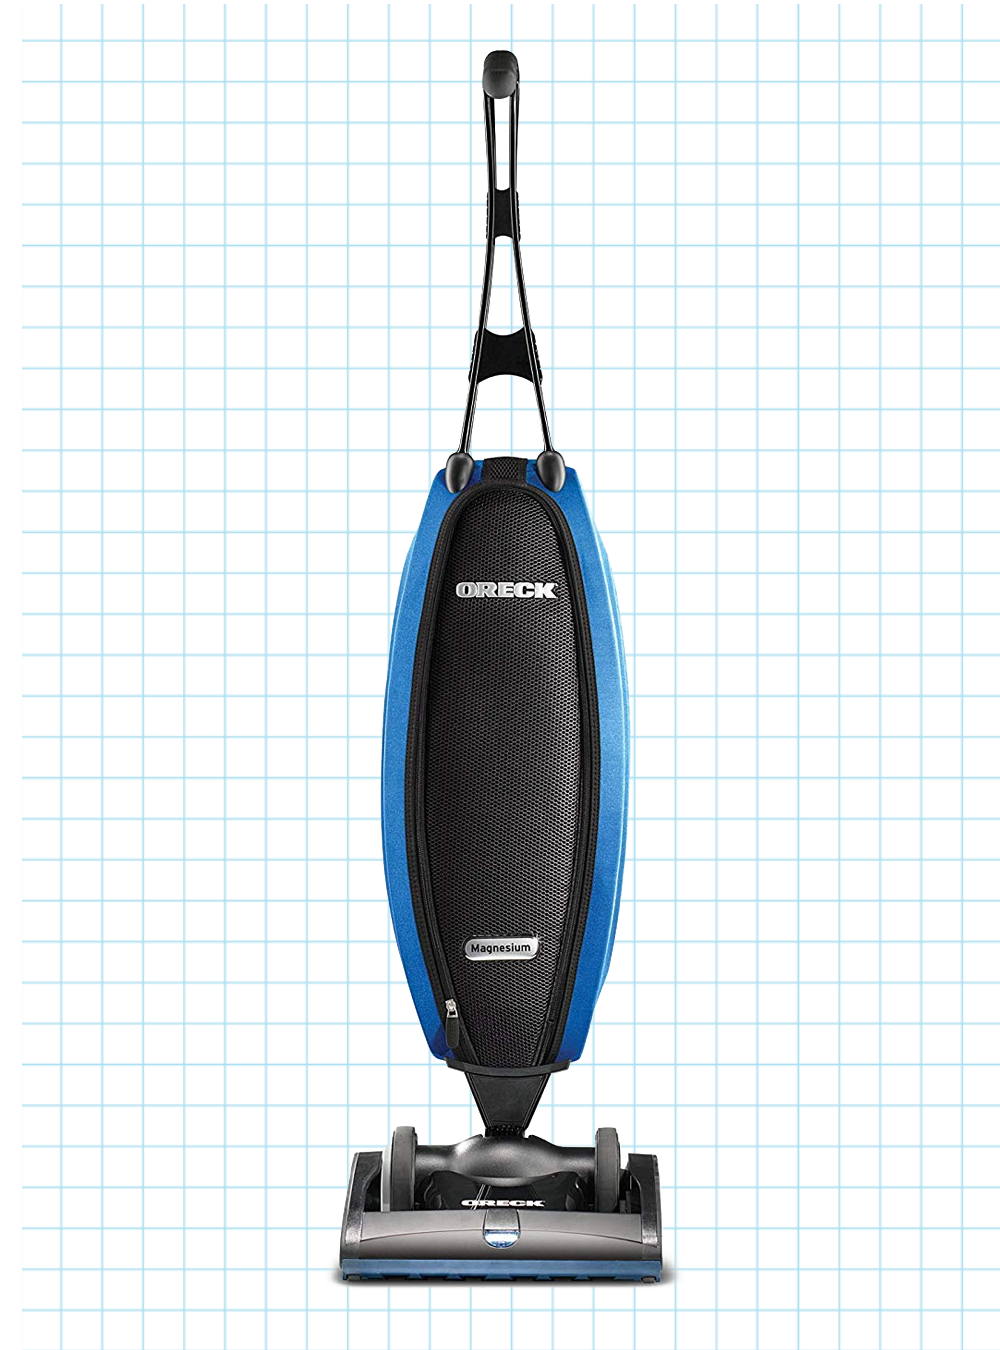 Best upright bagged vacuums 2020